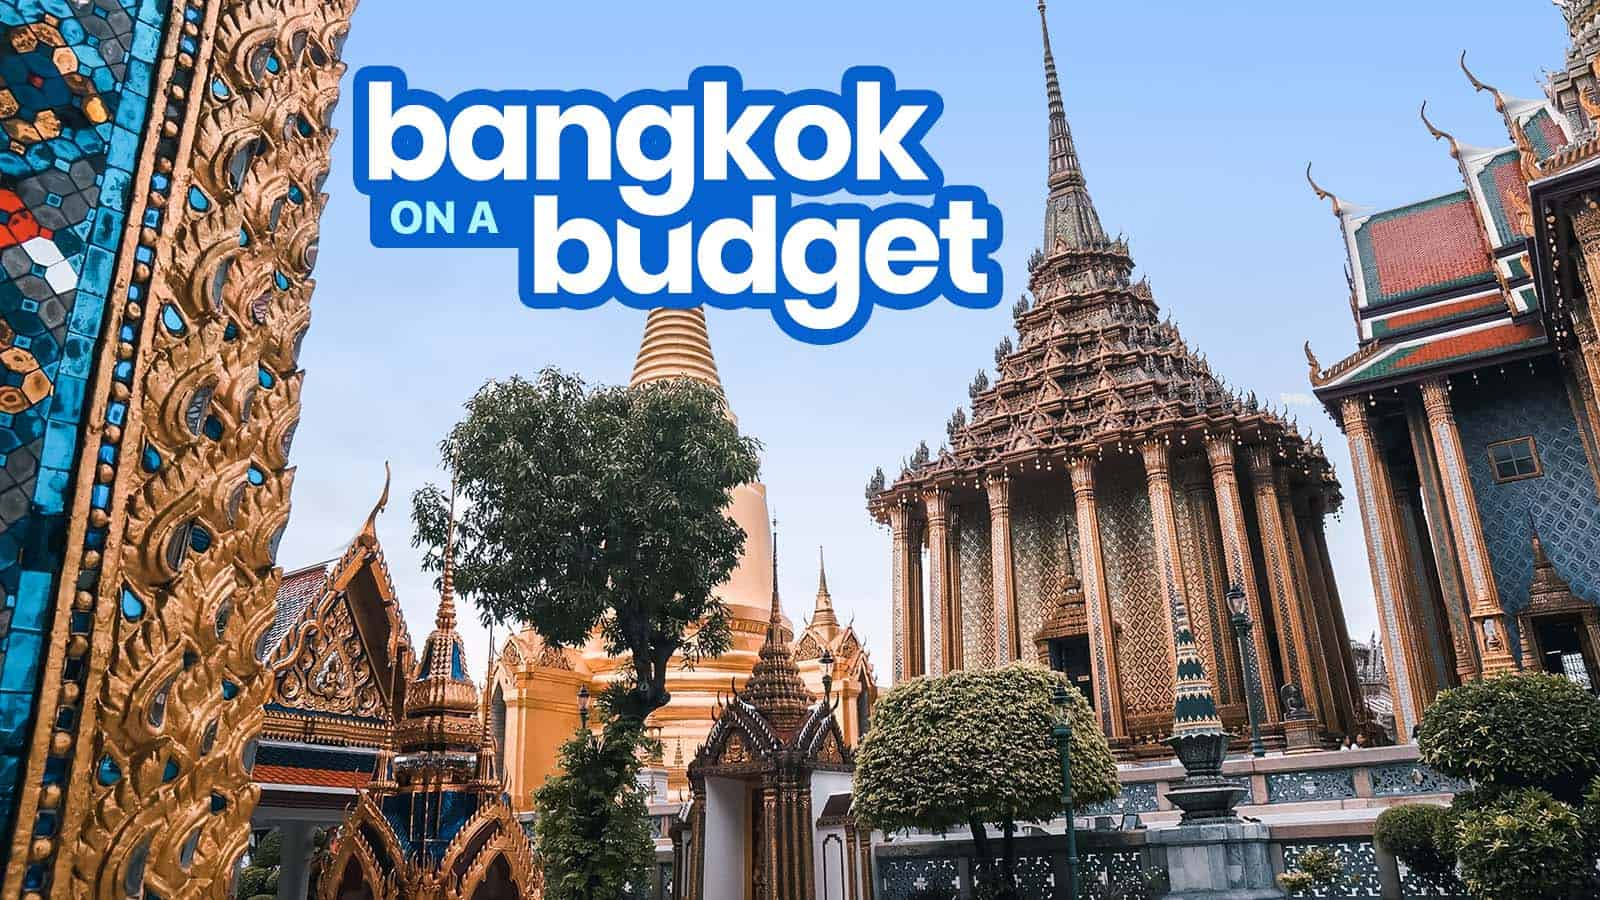 Updated! BANGKOK TRAVEL GUIDE: Budget, Itinerary, Things to Do 2018